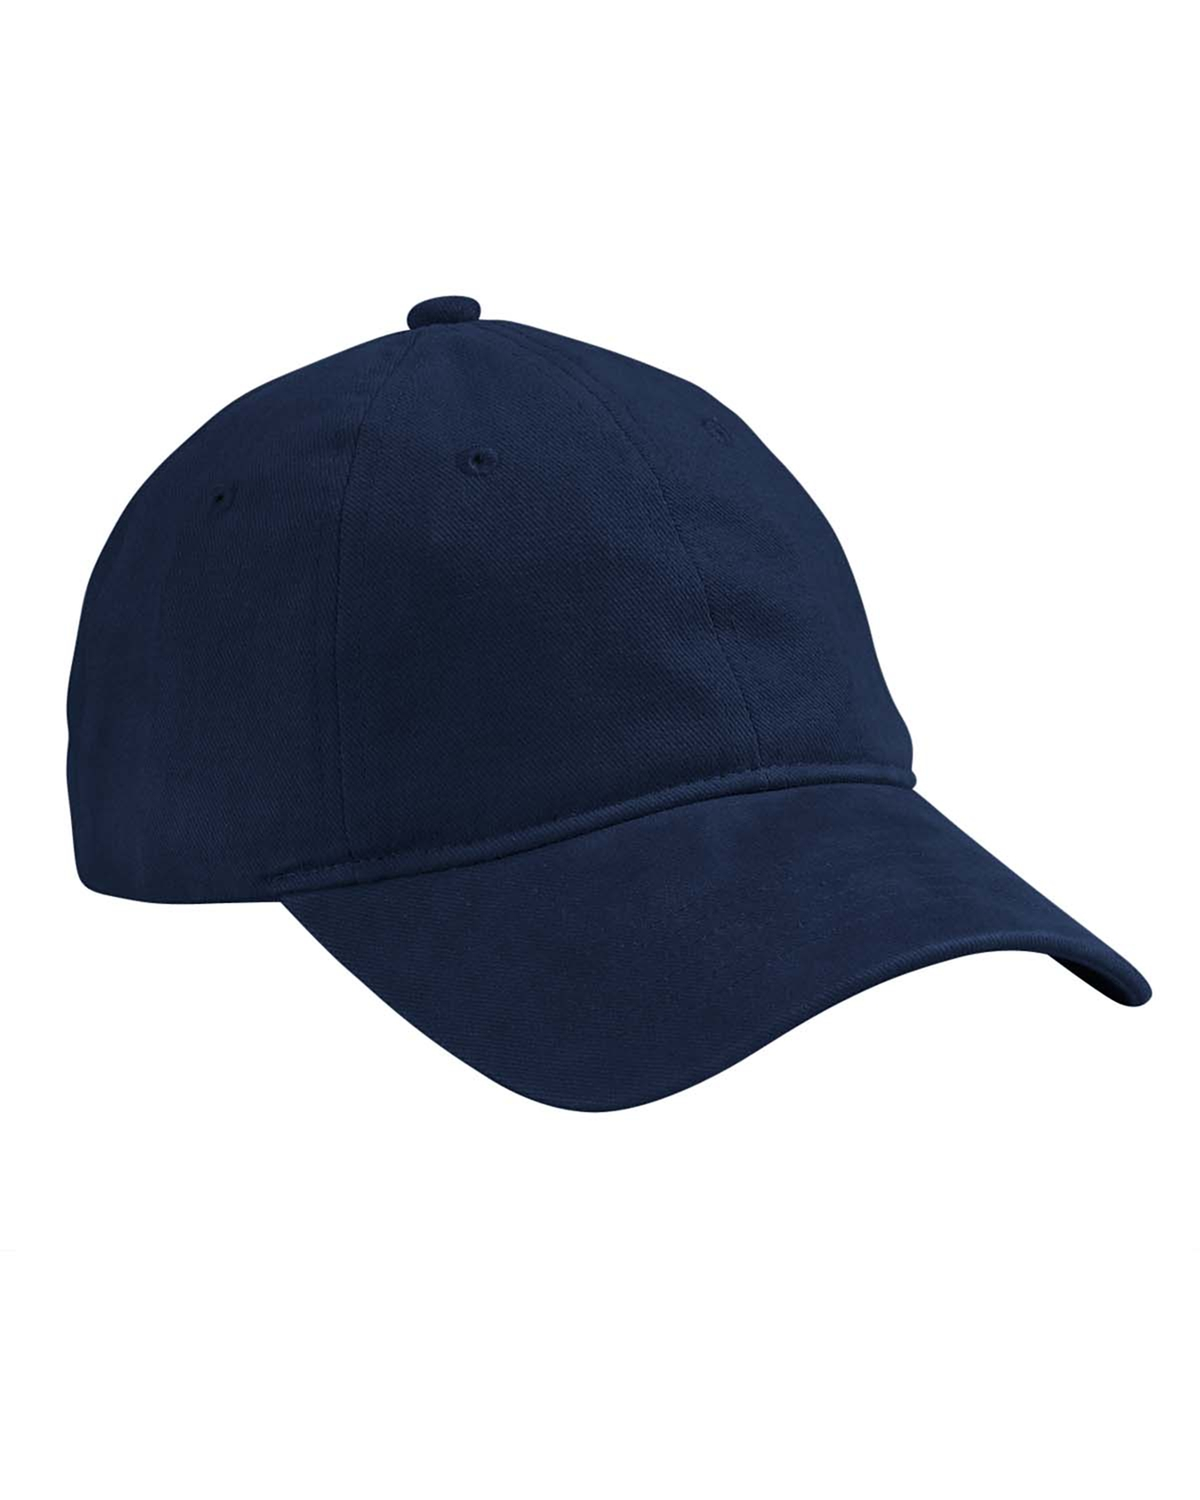 Big Accessories BA511 - Heavy Brushed Twill Unstructured Cap